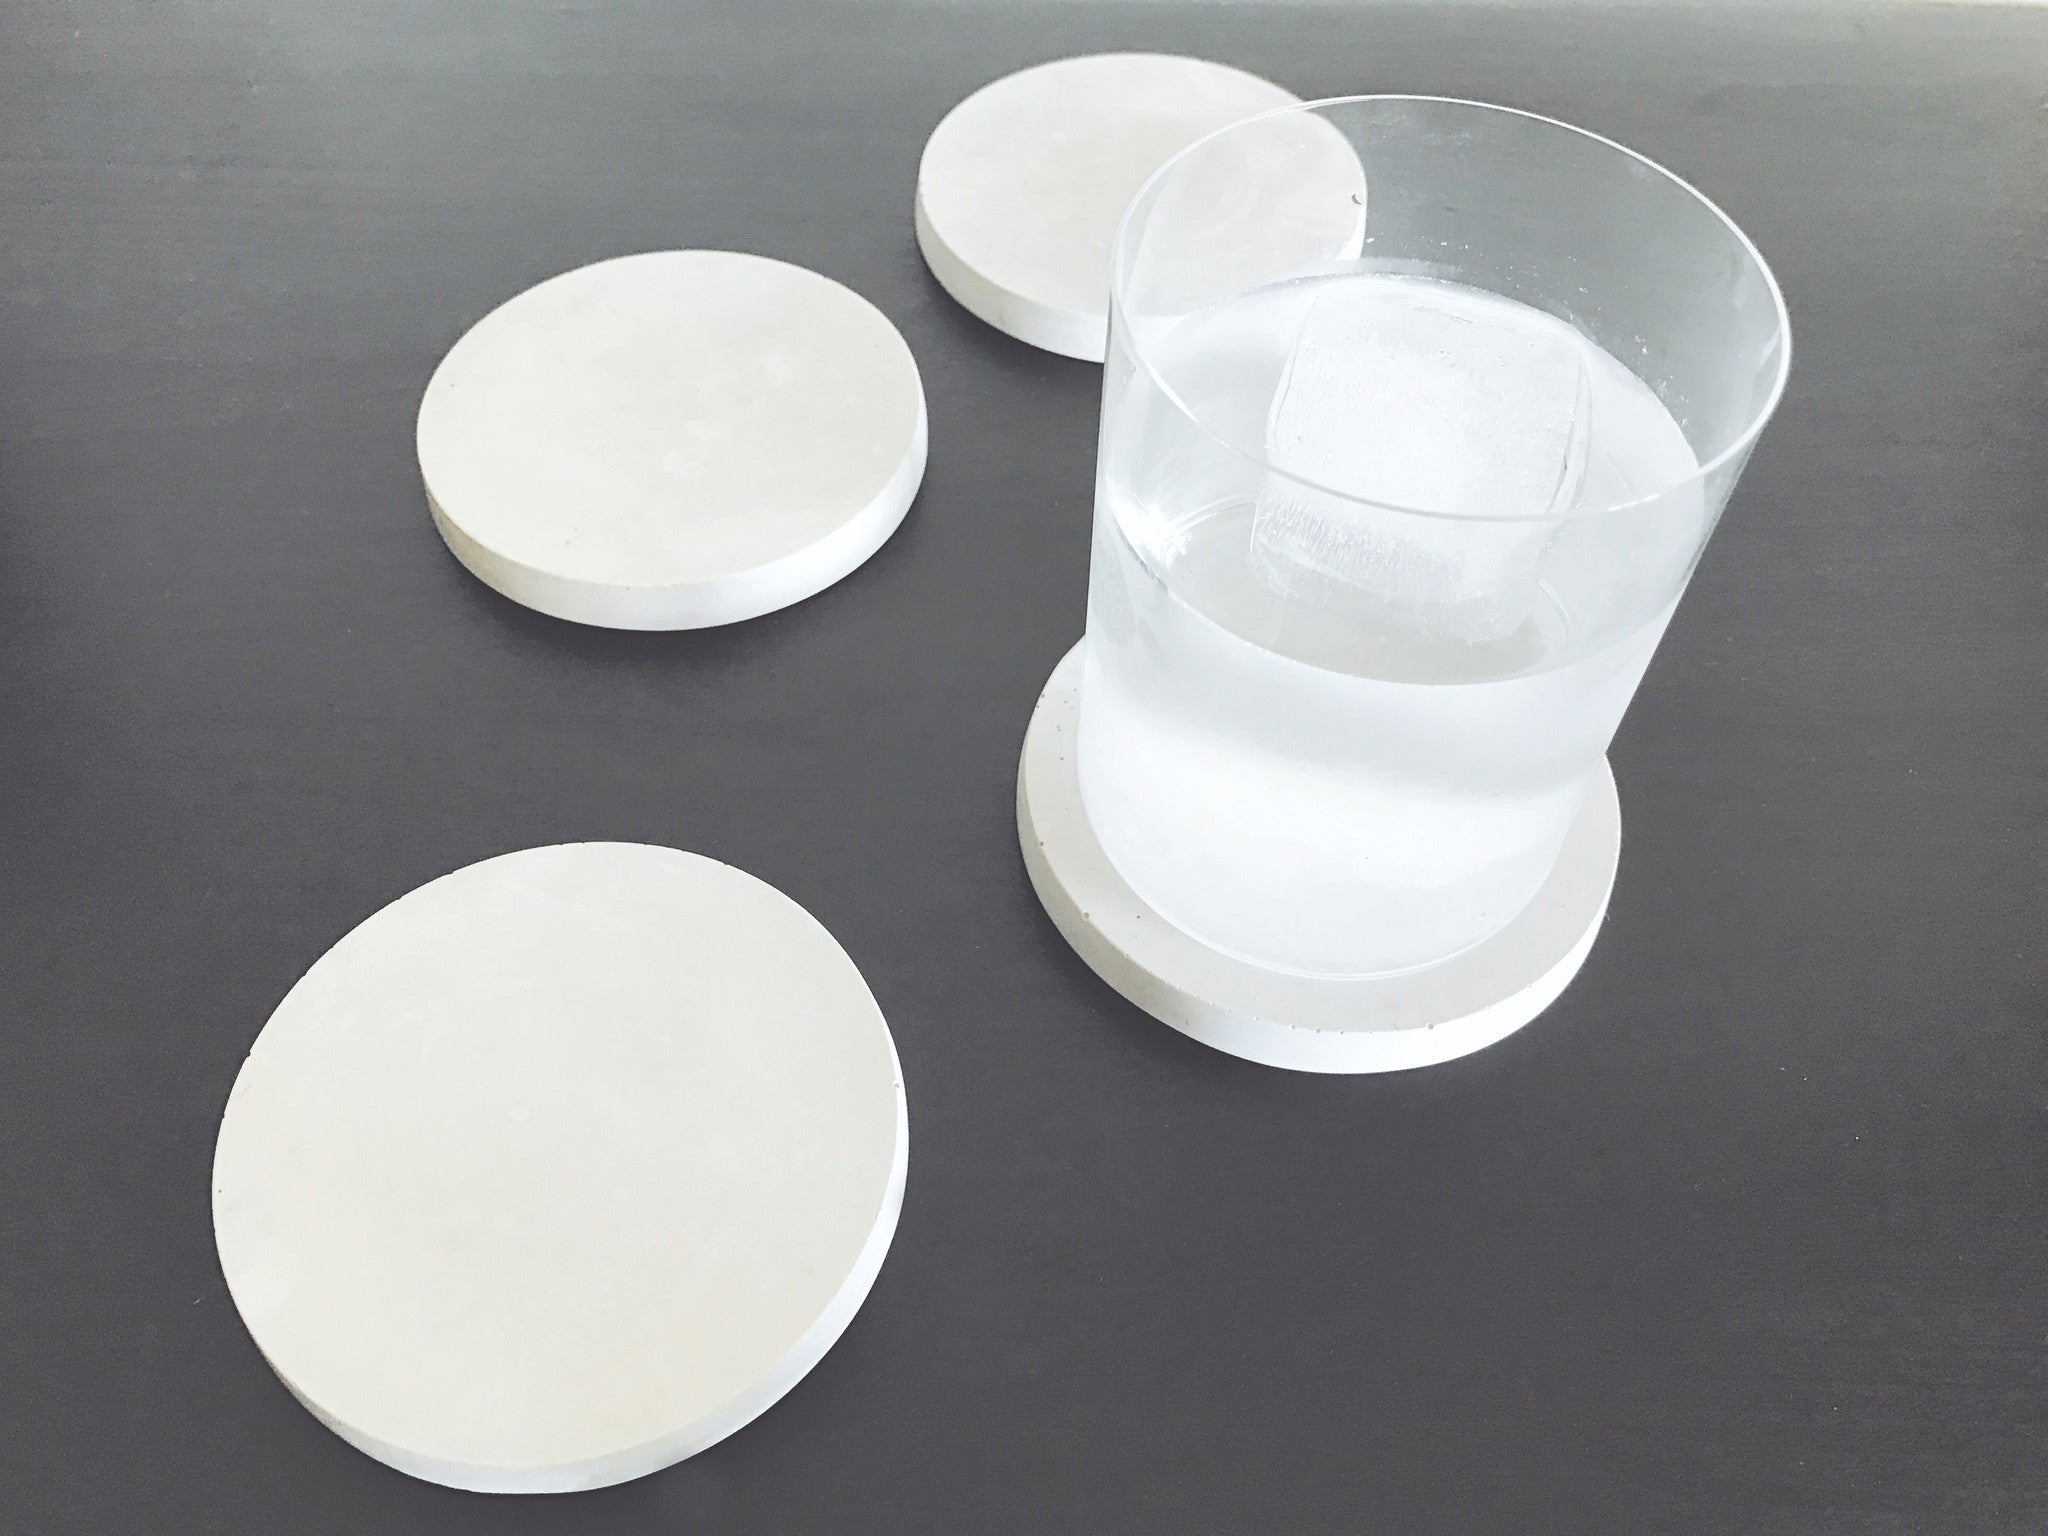 Minimal Concrete Coasters - a set of 2 or 4